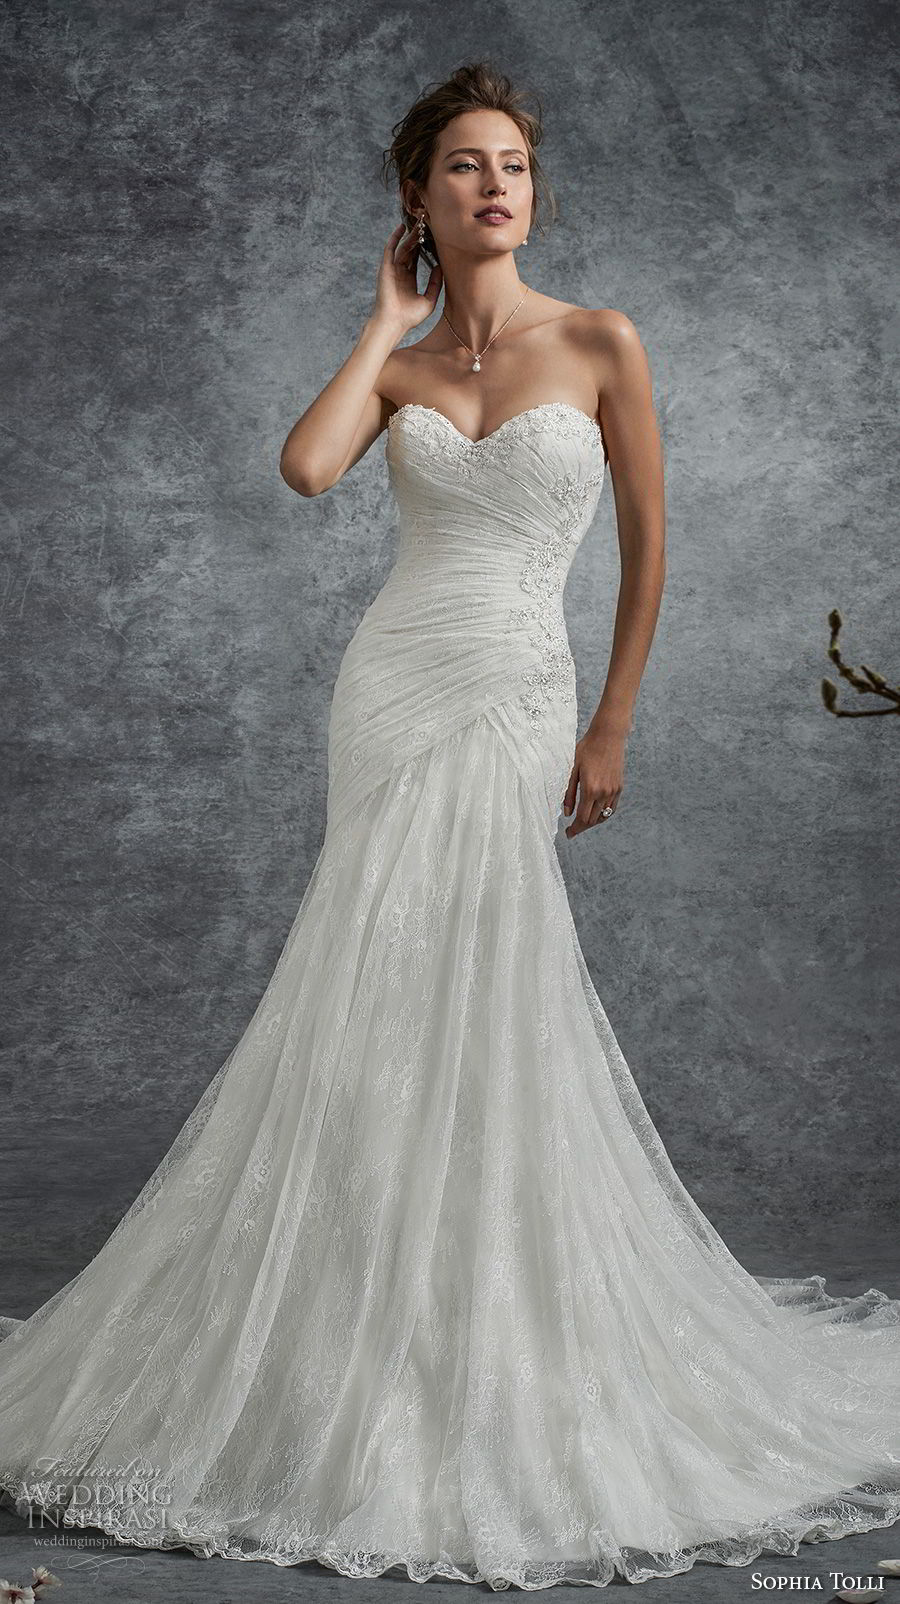 sophia tolli fall 2017 bridal strapless sweetheart neckline ruched bodice elegant trumpet wedding dress chapel train (26) mv